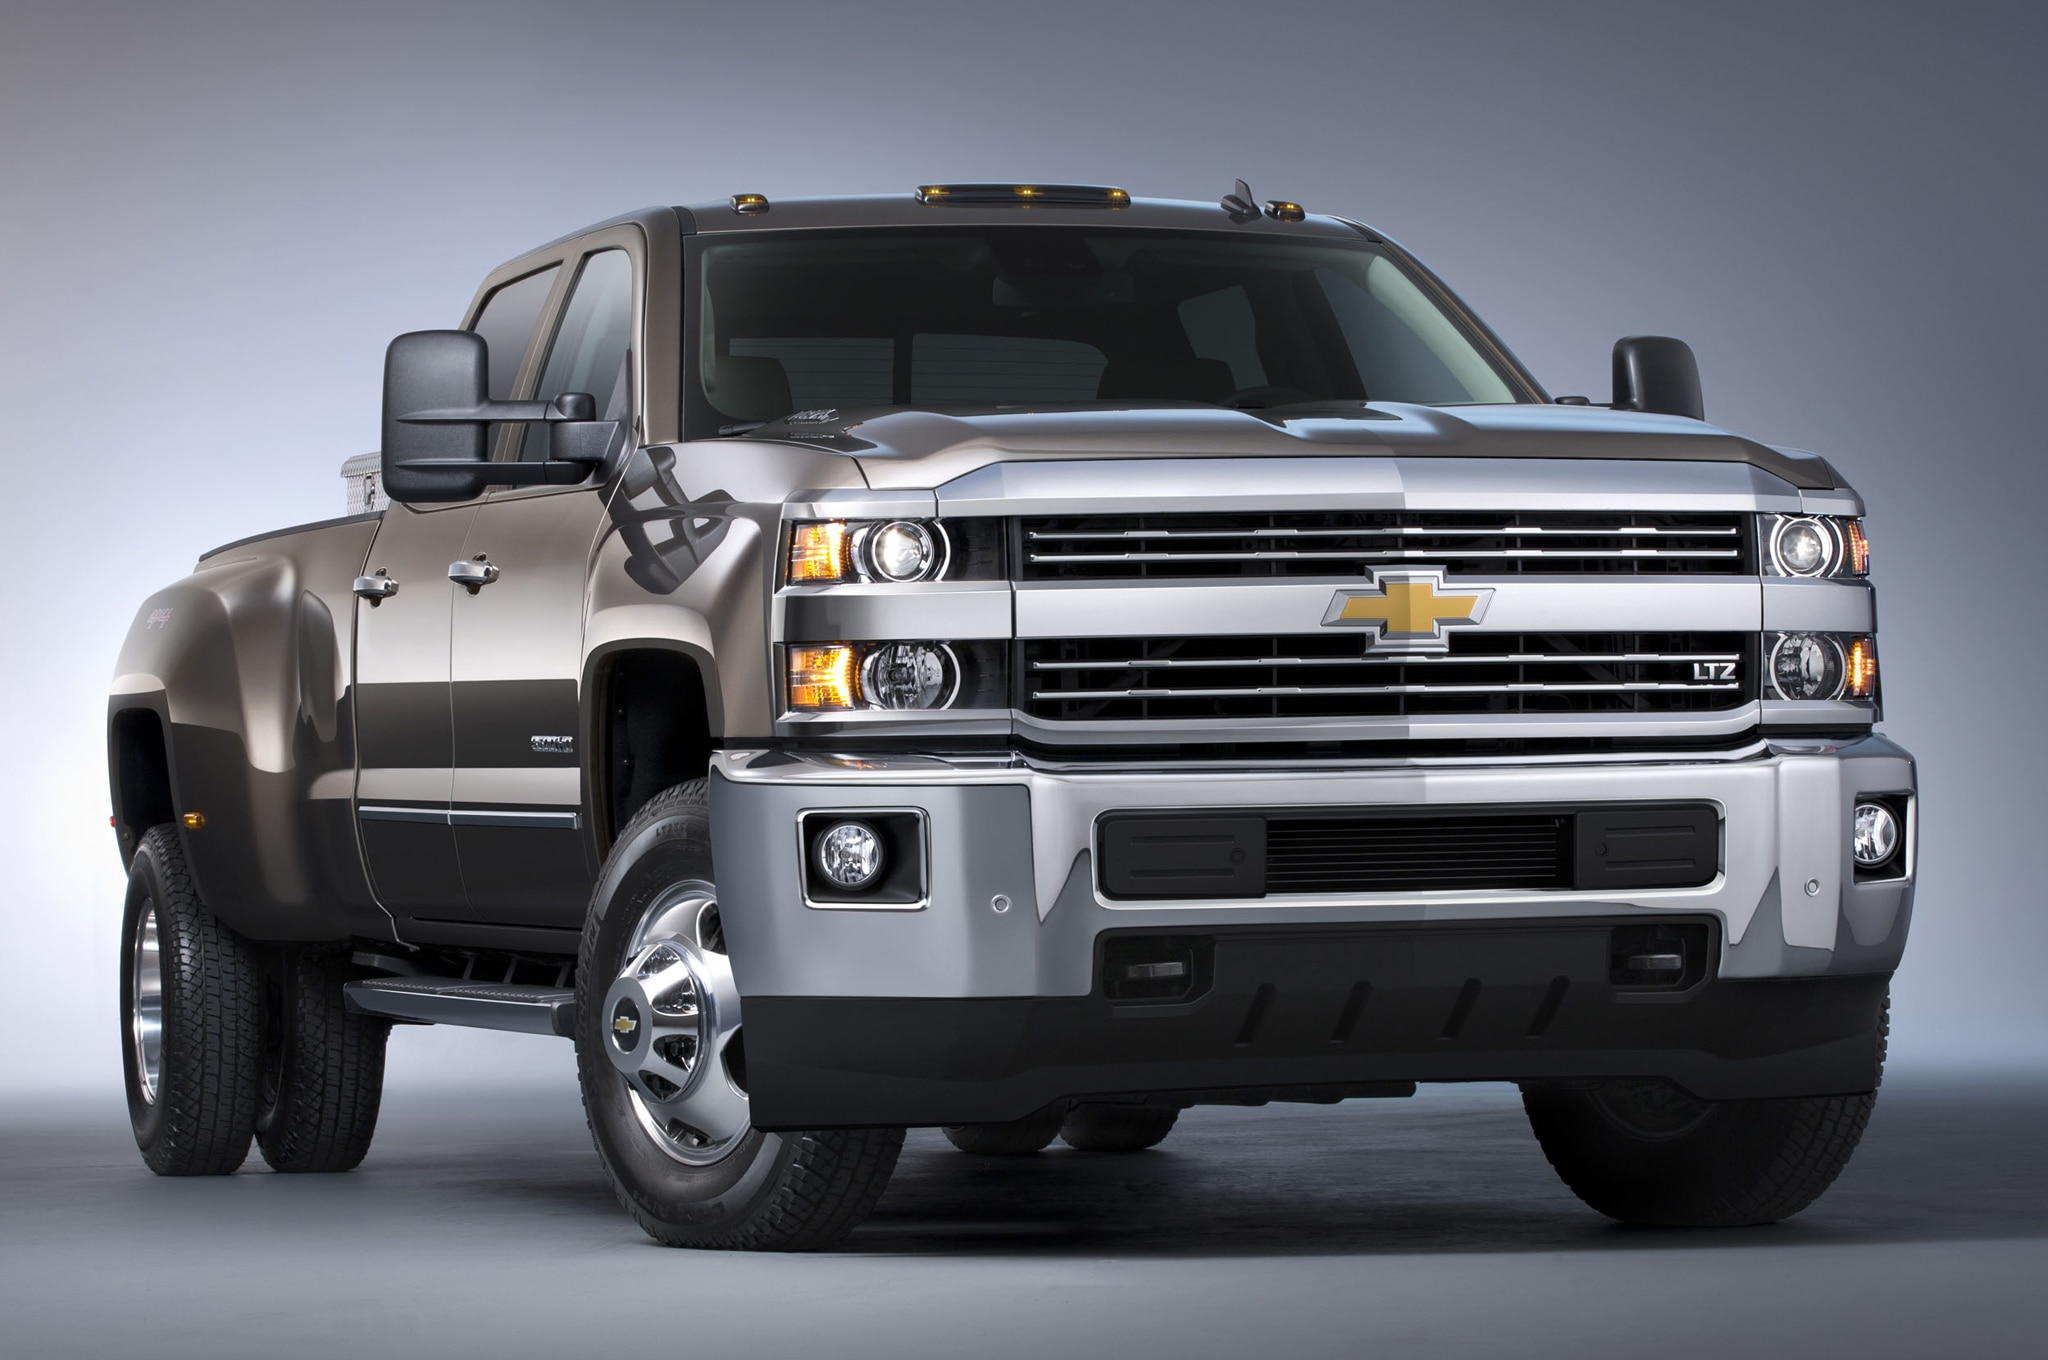 2015 Chevrolet Silverado 3500HD LTZ front three quarters view